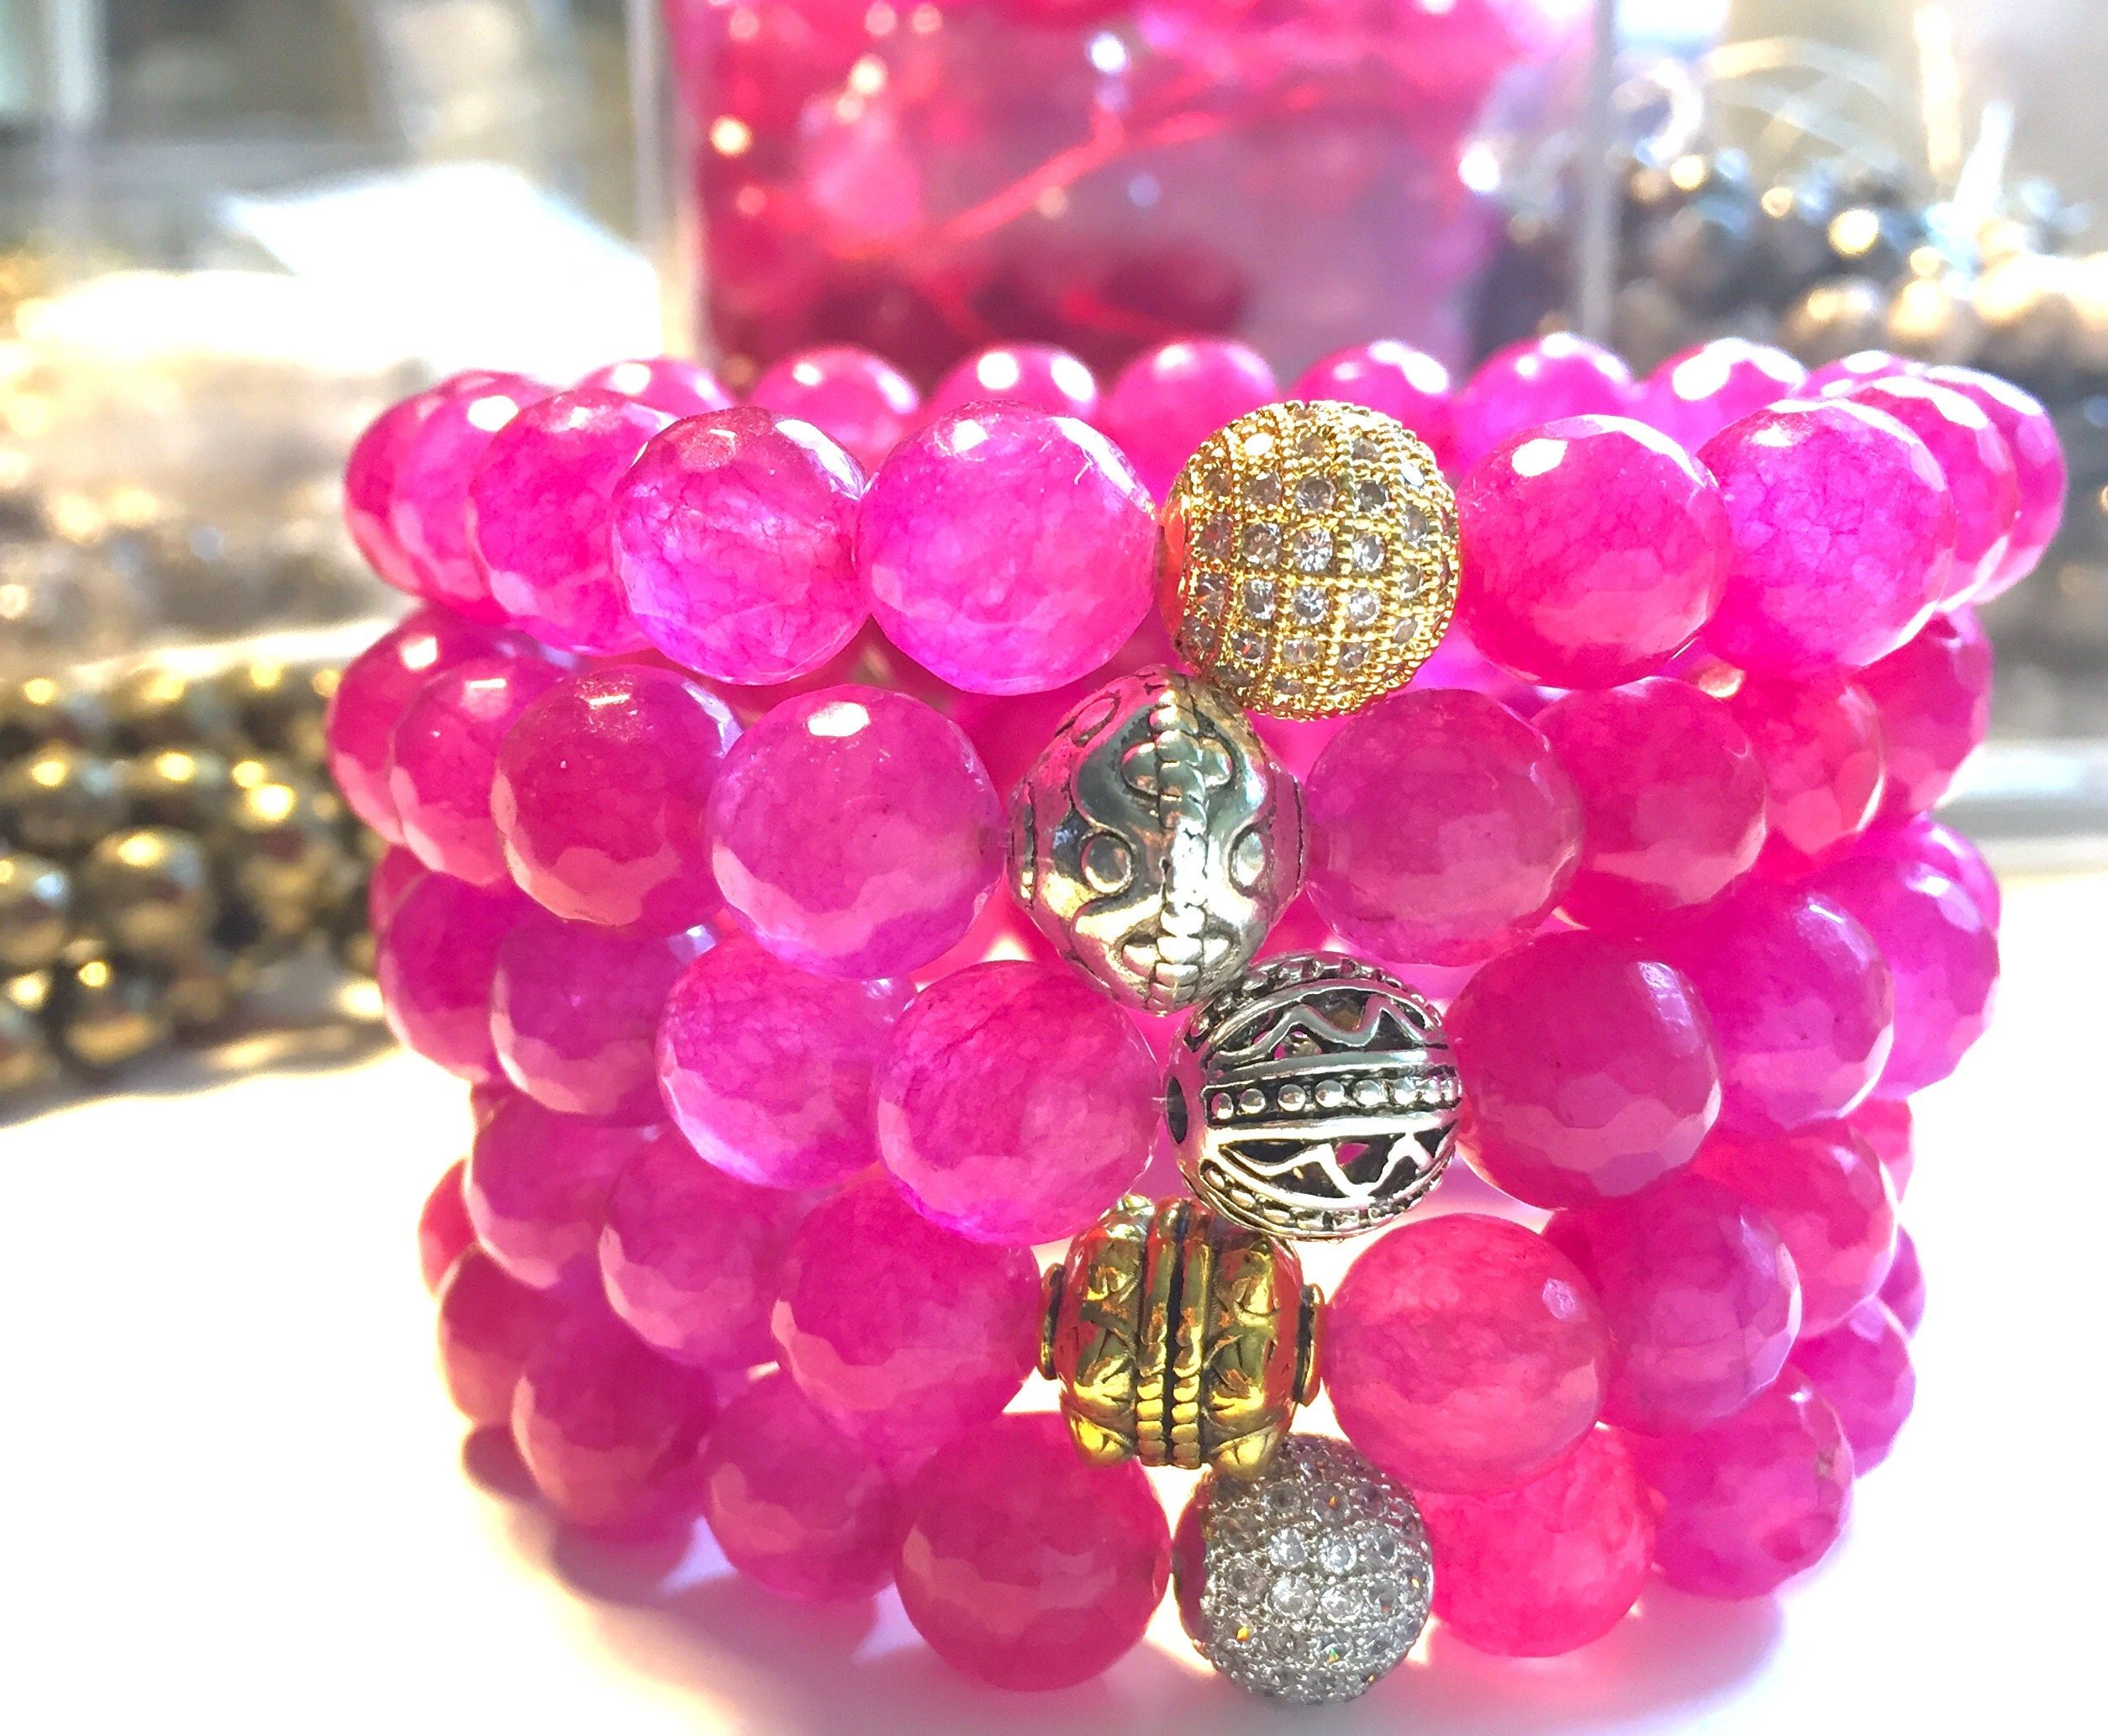 bead repellent img charms copy jewellery mosquito crystal with products stone collections lava beaded pink bracelet